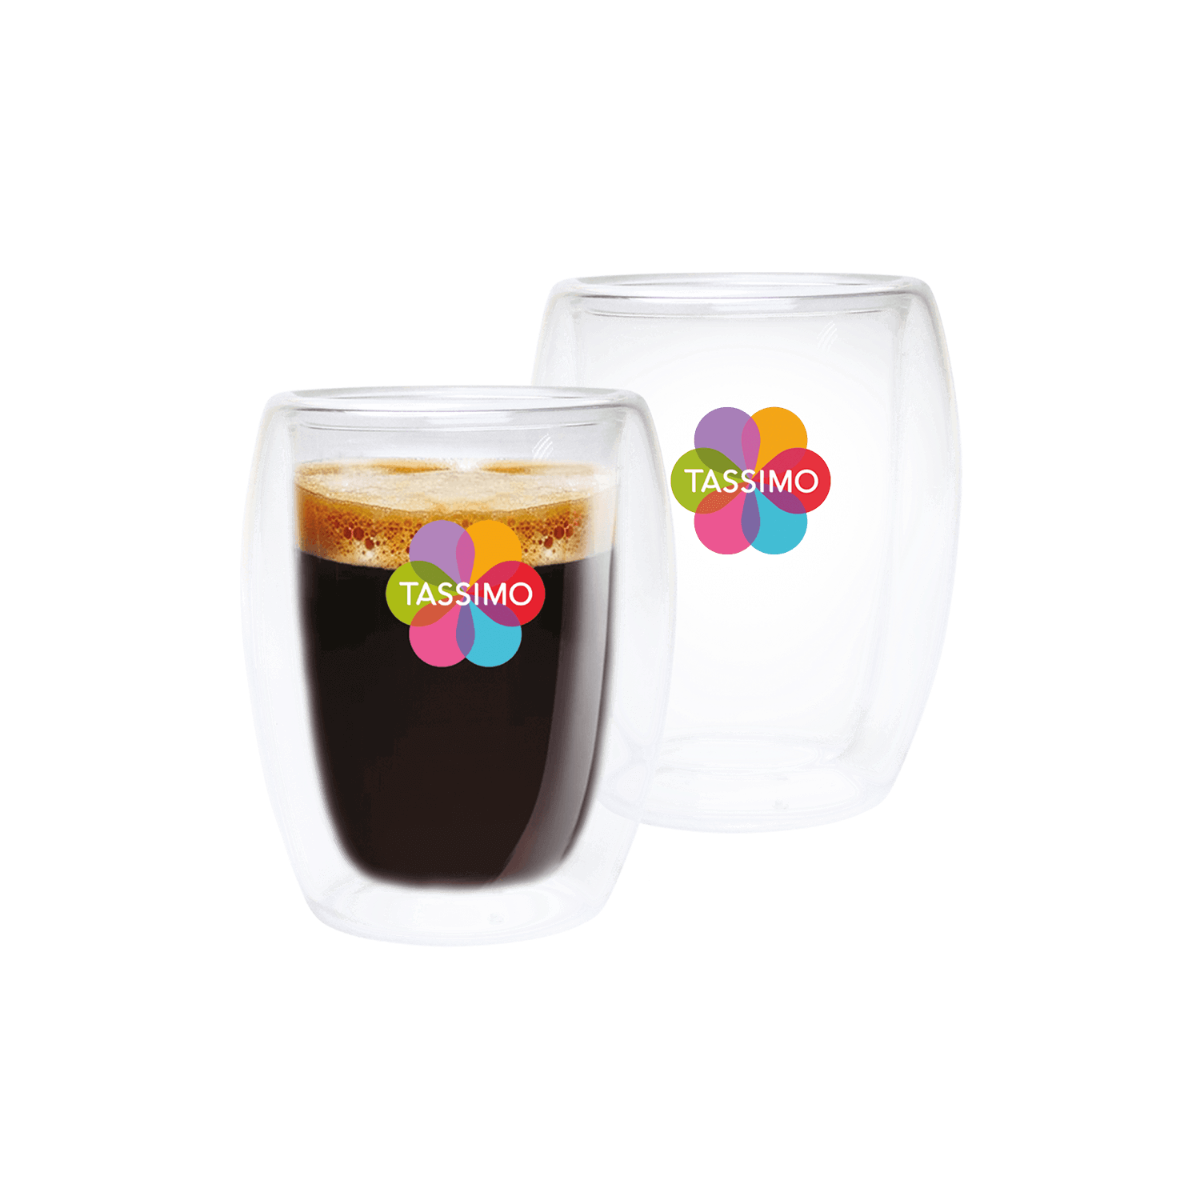 TASSIMO Lungo Glasses, pack of 2